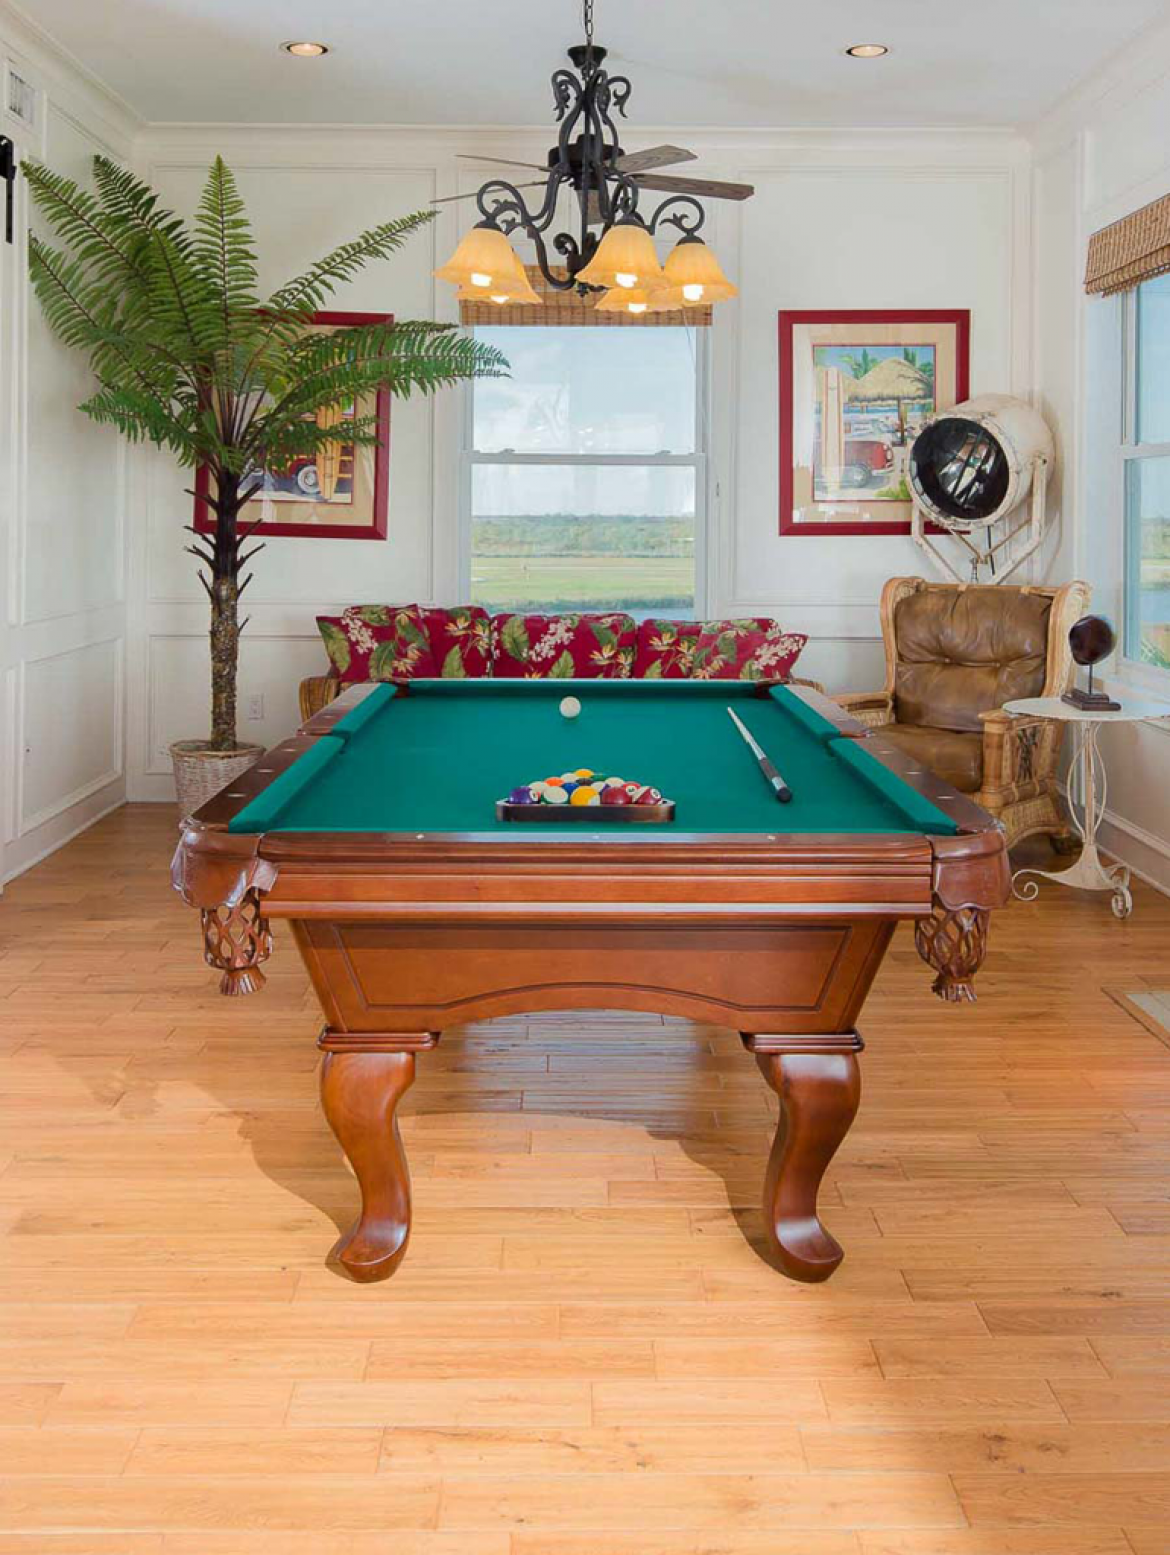 Pool table the ritz of crystal beach for Pool table 6 x 3